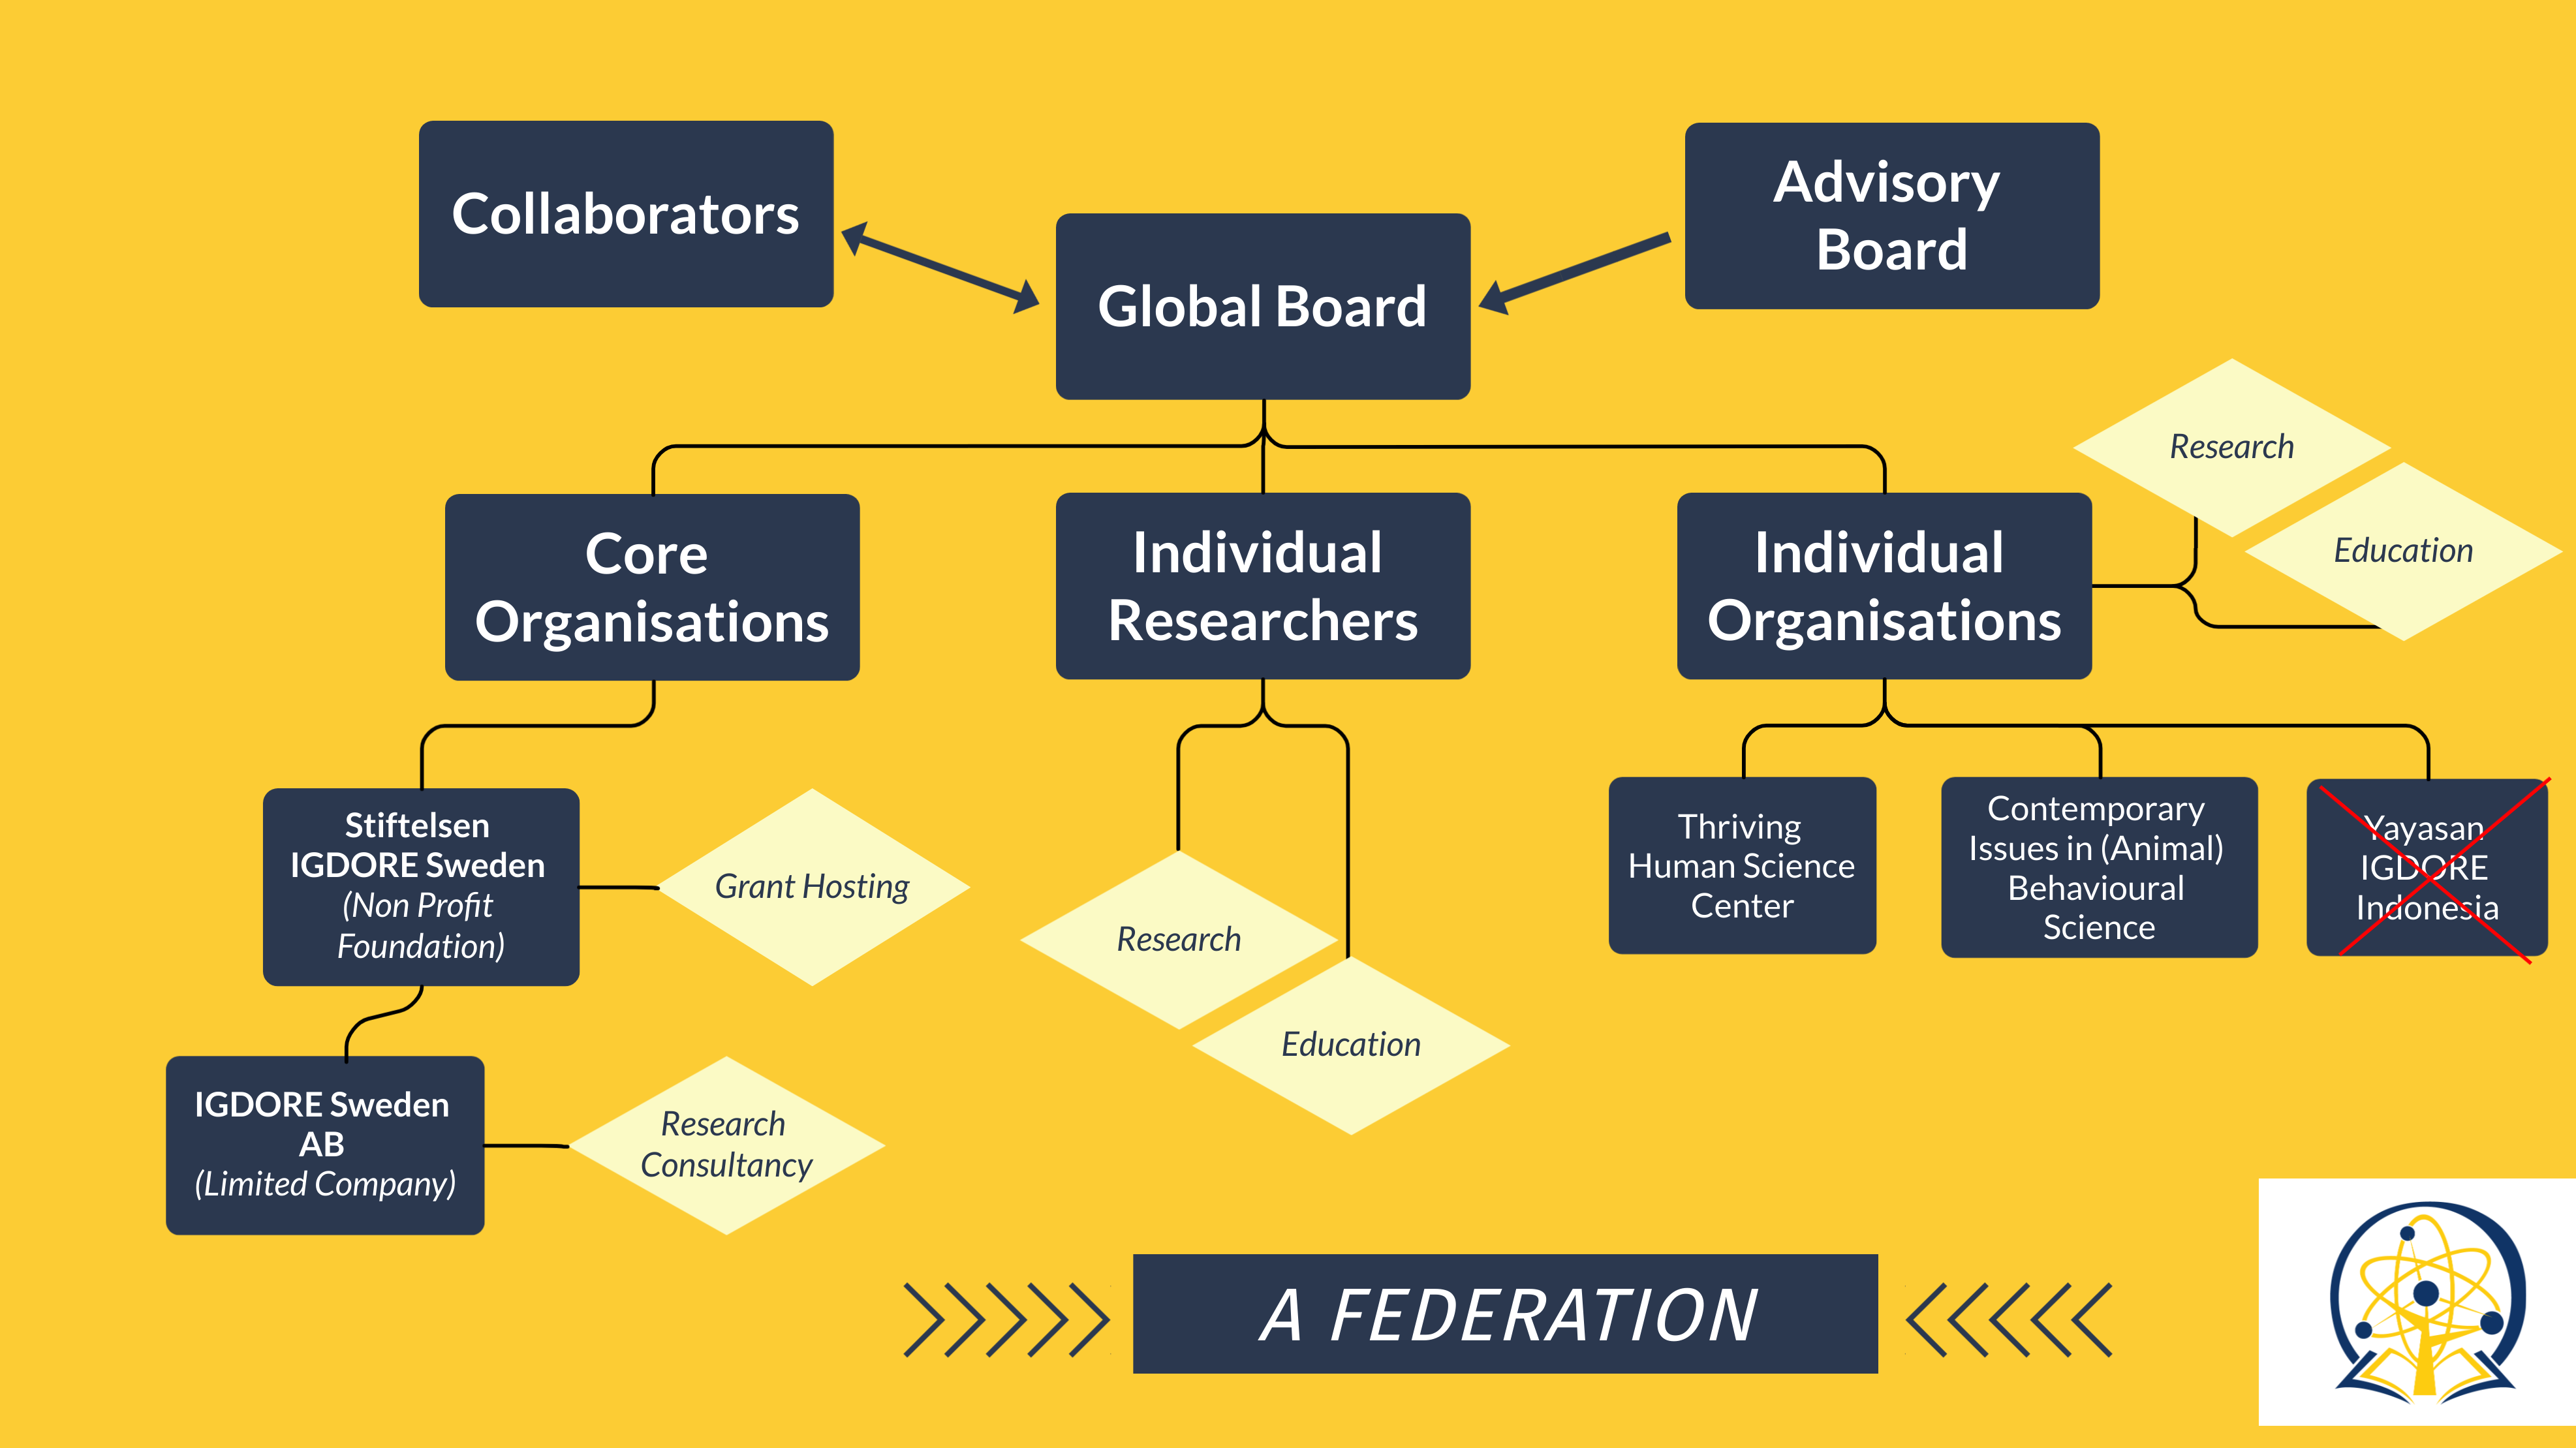 IGDORE's organisational structure